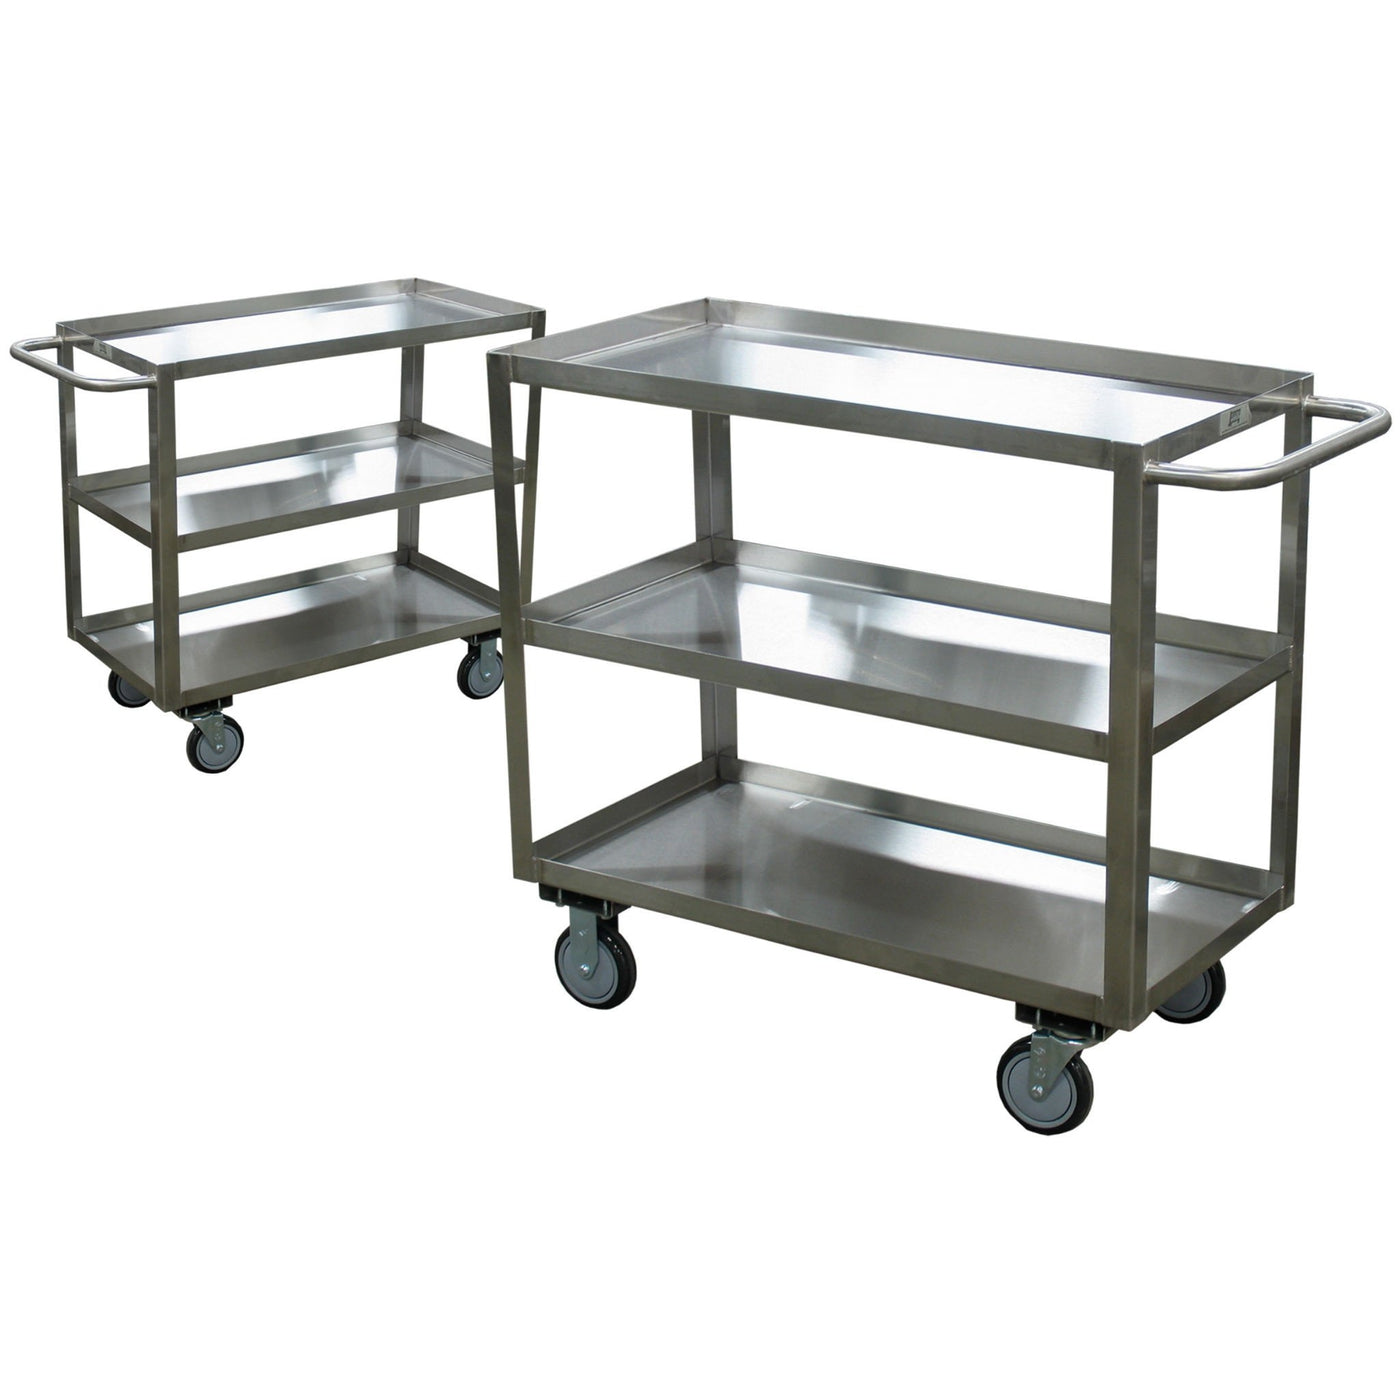 Stainless Steel Utility Carts | Mortech Manufacturing Company Inc. Quality Stainless  Steel Autopsy, Morgue, Funeral Home, Necropsy, Veterinary / Anatomy, ...